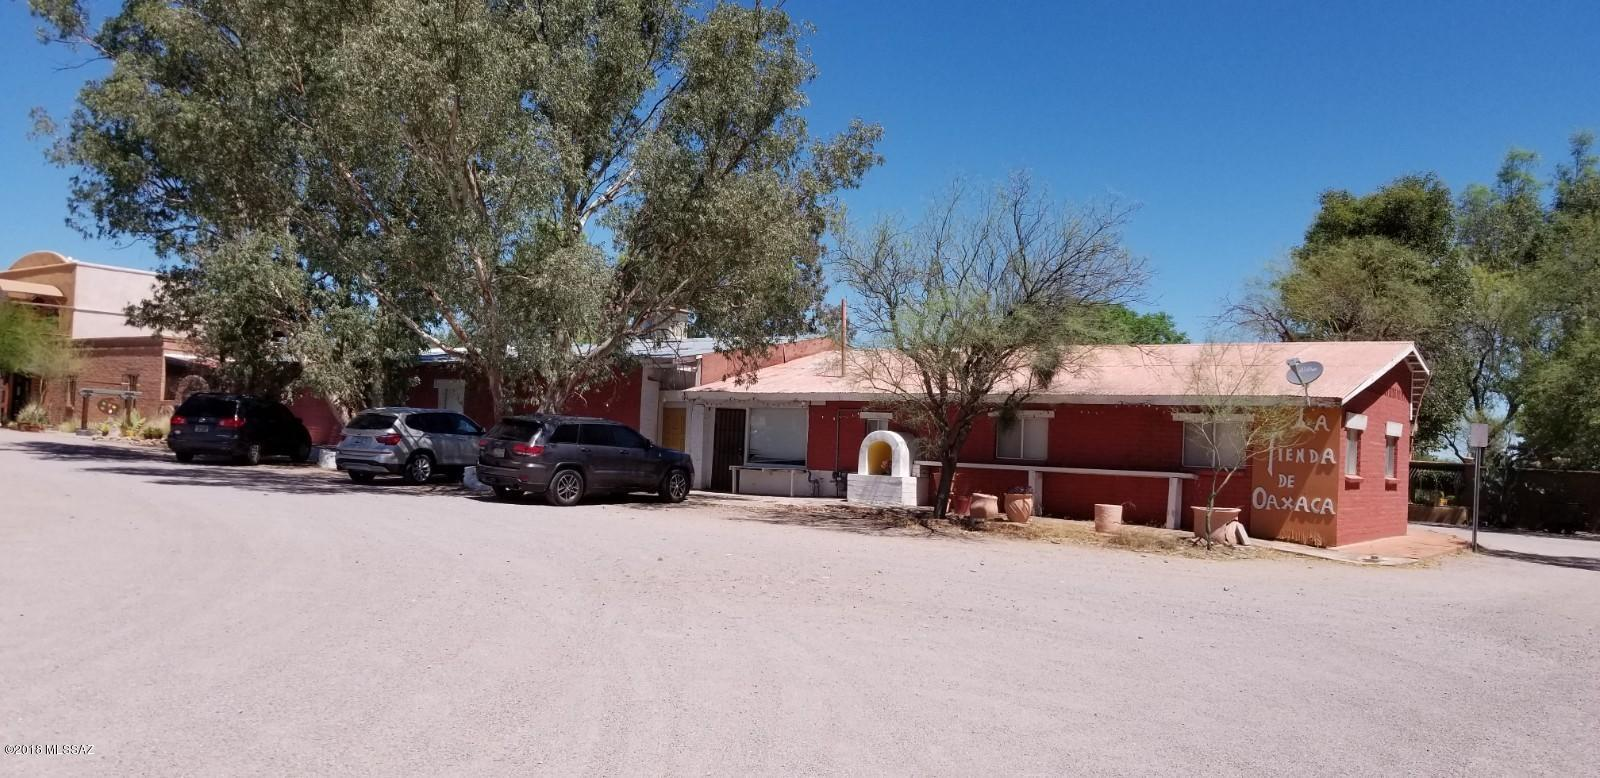 Photo of 16 Will Rogers Lane, Tubac, AZ 85646